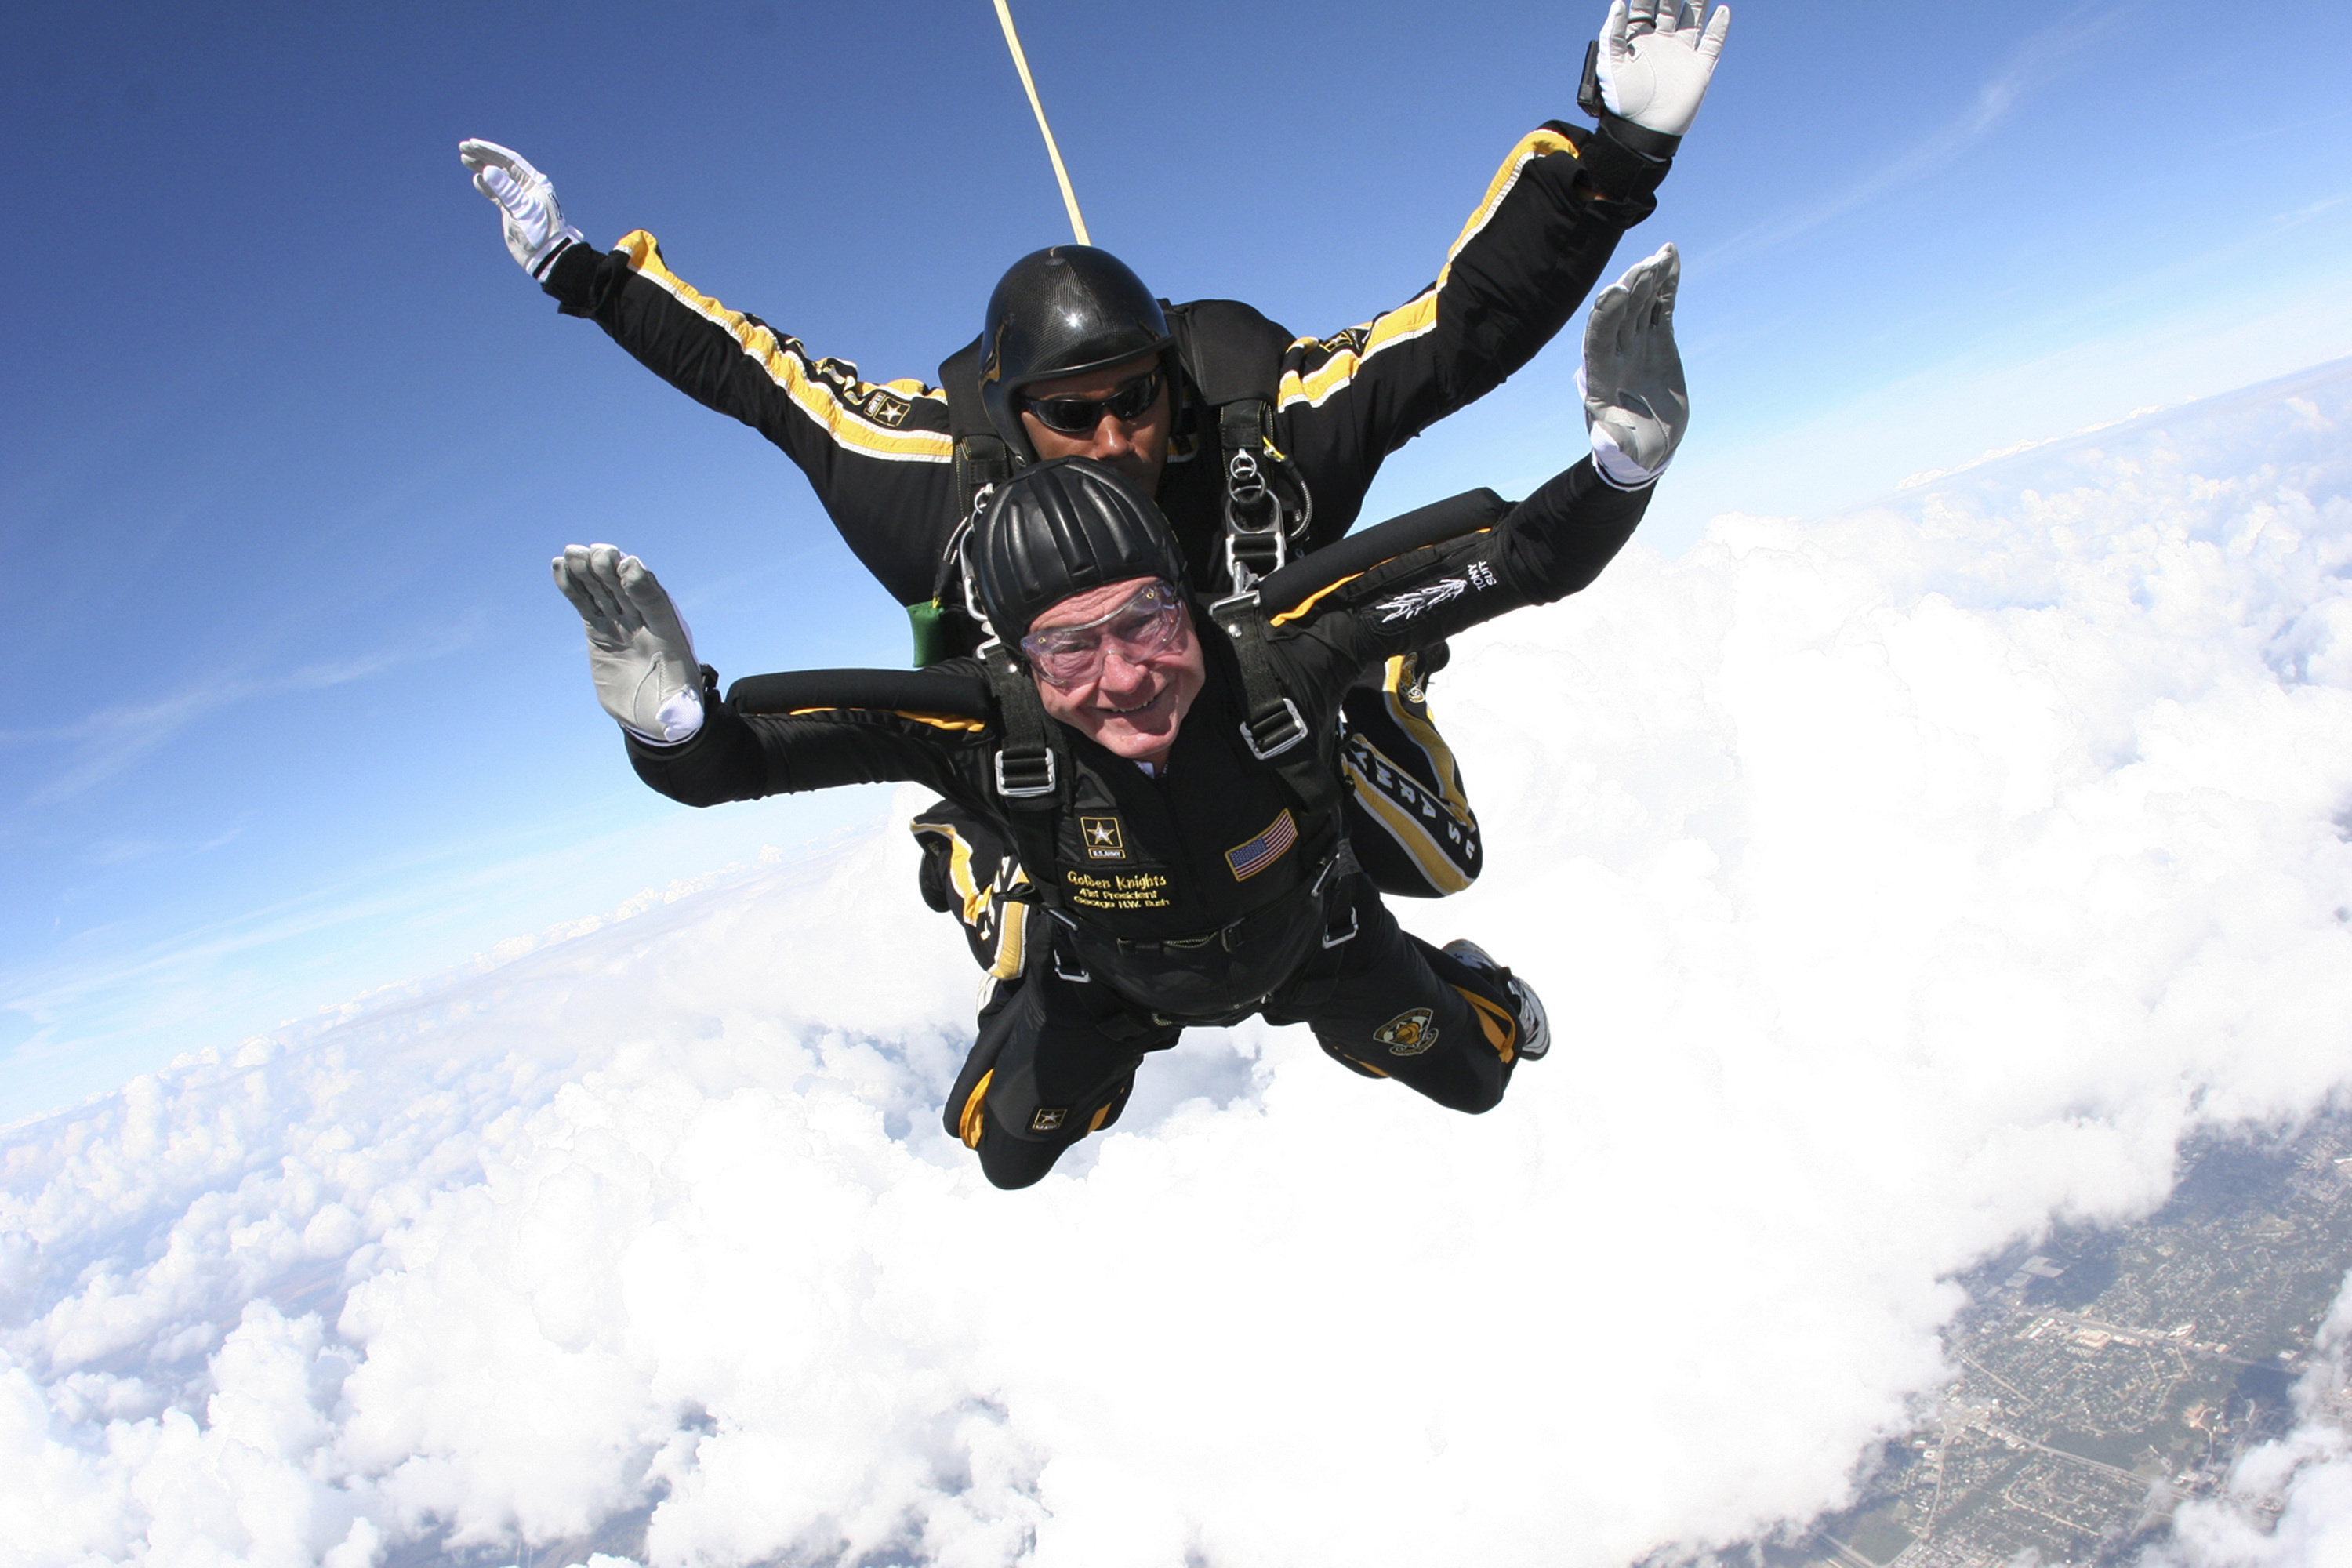 In this Nov. 10, 2007, photo provided by the U.S. Army Golden Knights, former President George H.W. Bush free falls with Golden Knights parachute team member Sgt. 1st Class Mike Elliott, as he makes a dramatic entrance to his presidential museum during a rededication ceremony in College Station, Texas. (Sgt. 1st Class Kevin McDaniel/U.S. Army via AP, File)